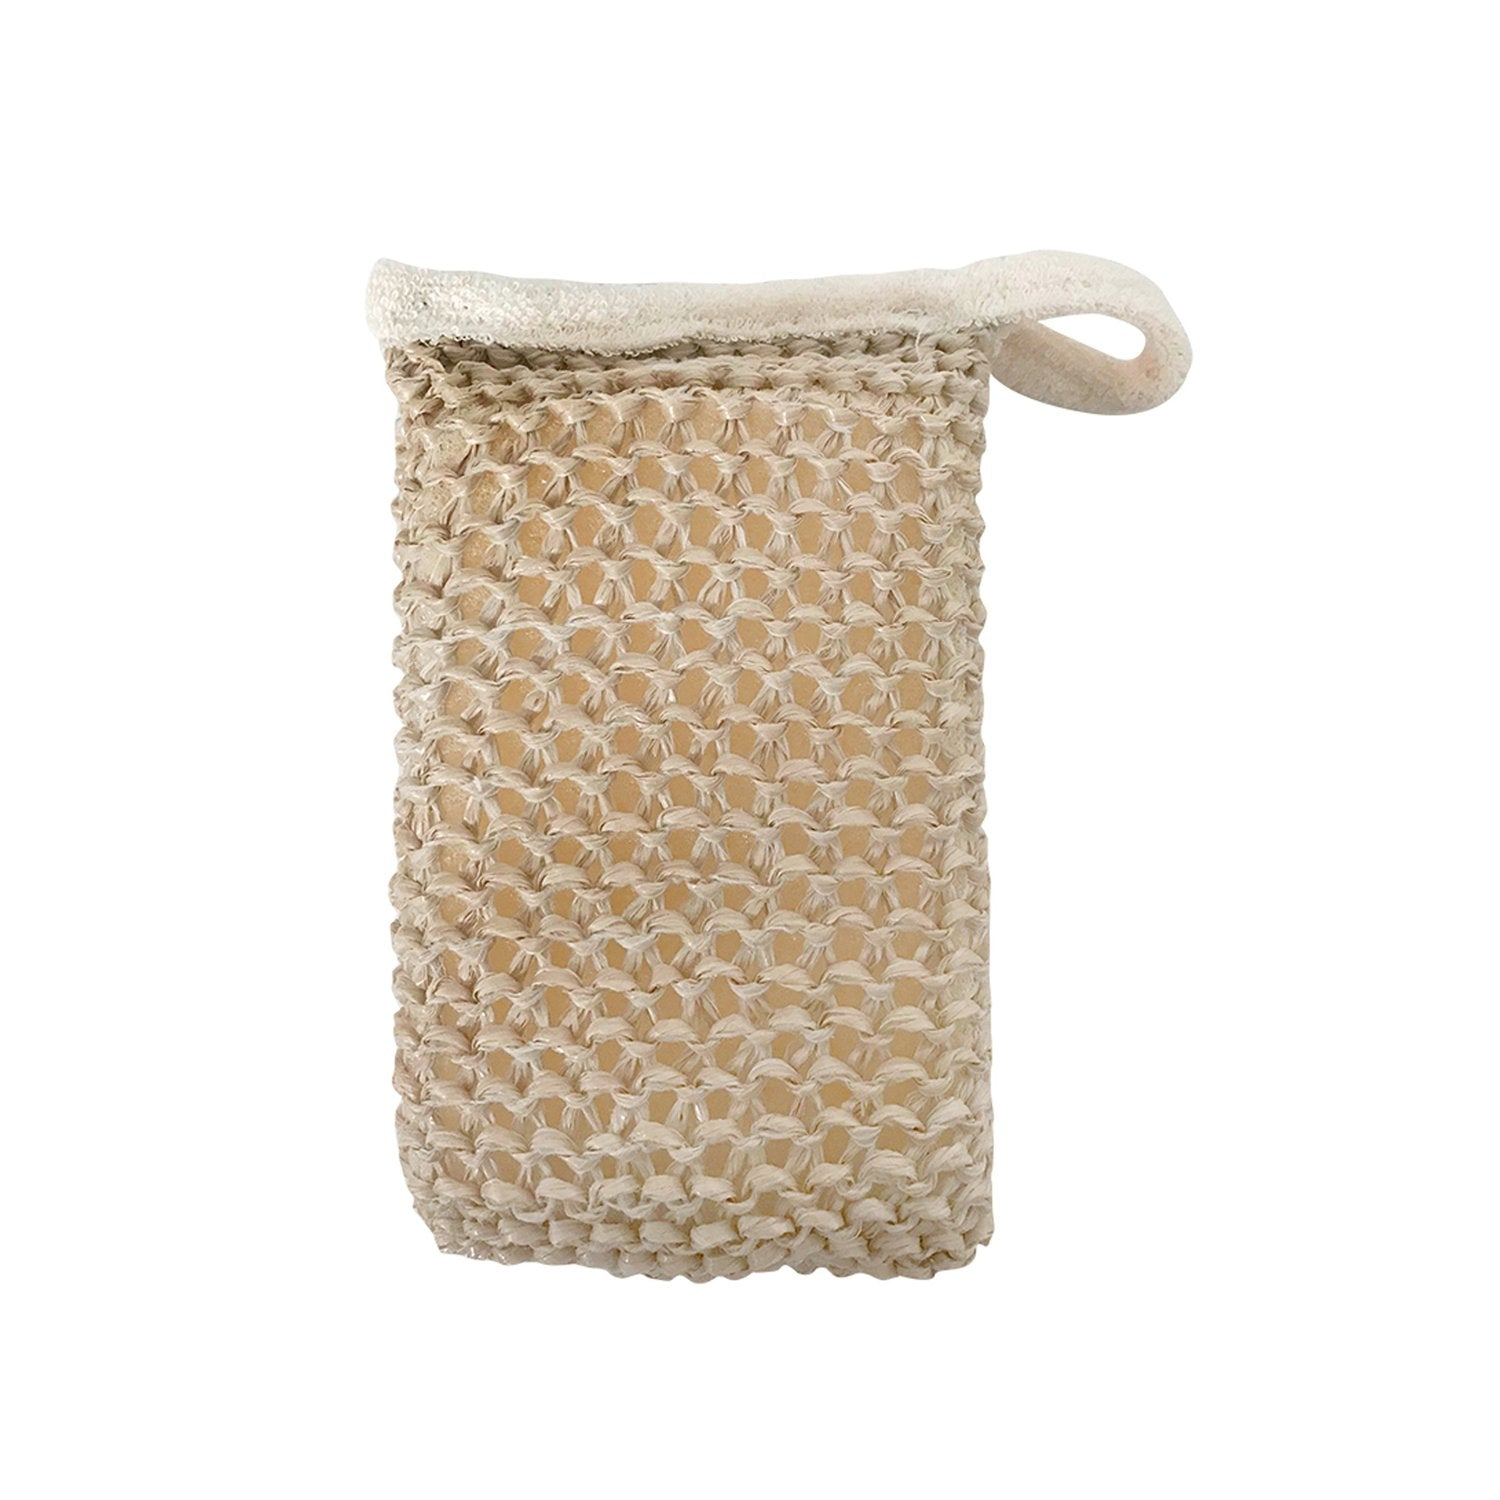 Afterspa - Bath & Shower Exfoliating Scrubber